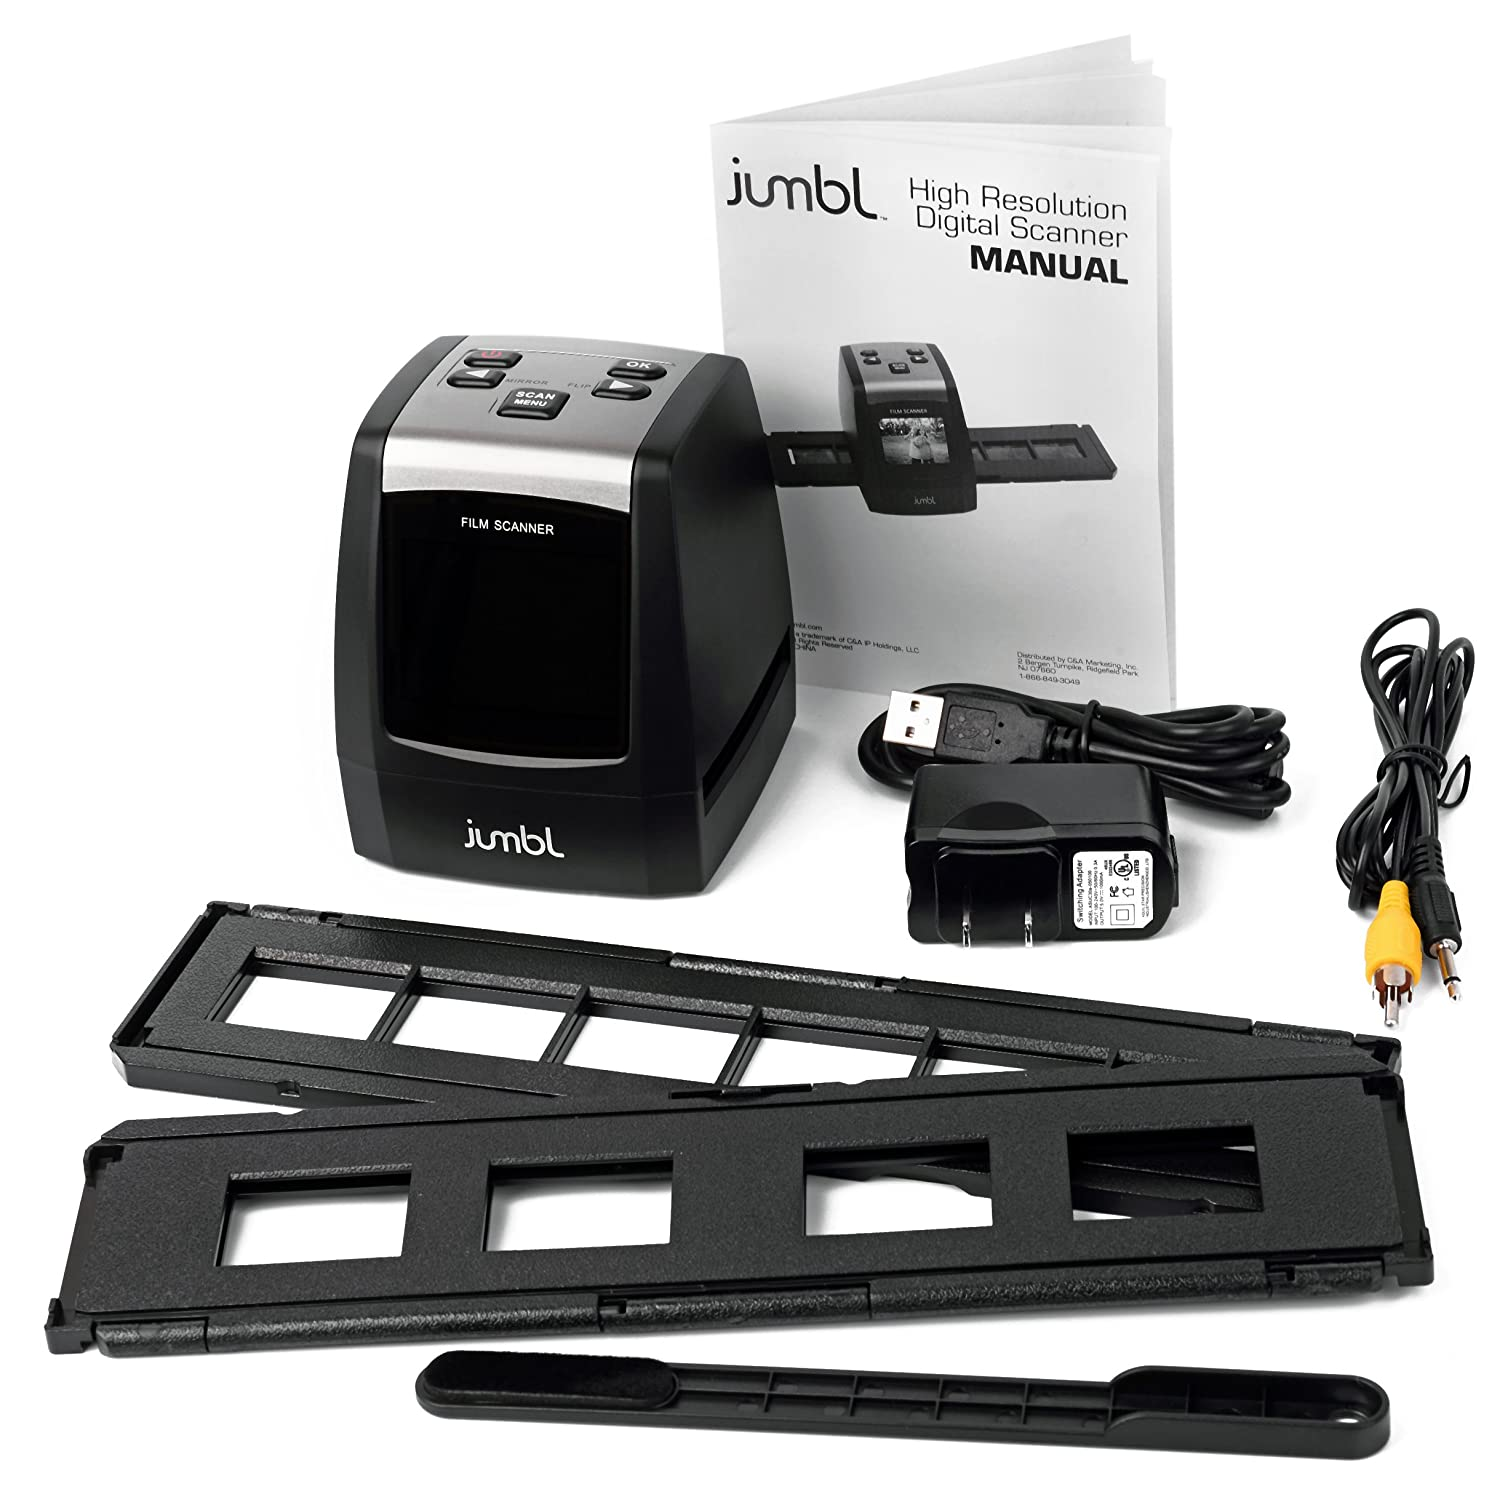 Wrg-7297] ion film 2 sd manual | 2019 ebook library.